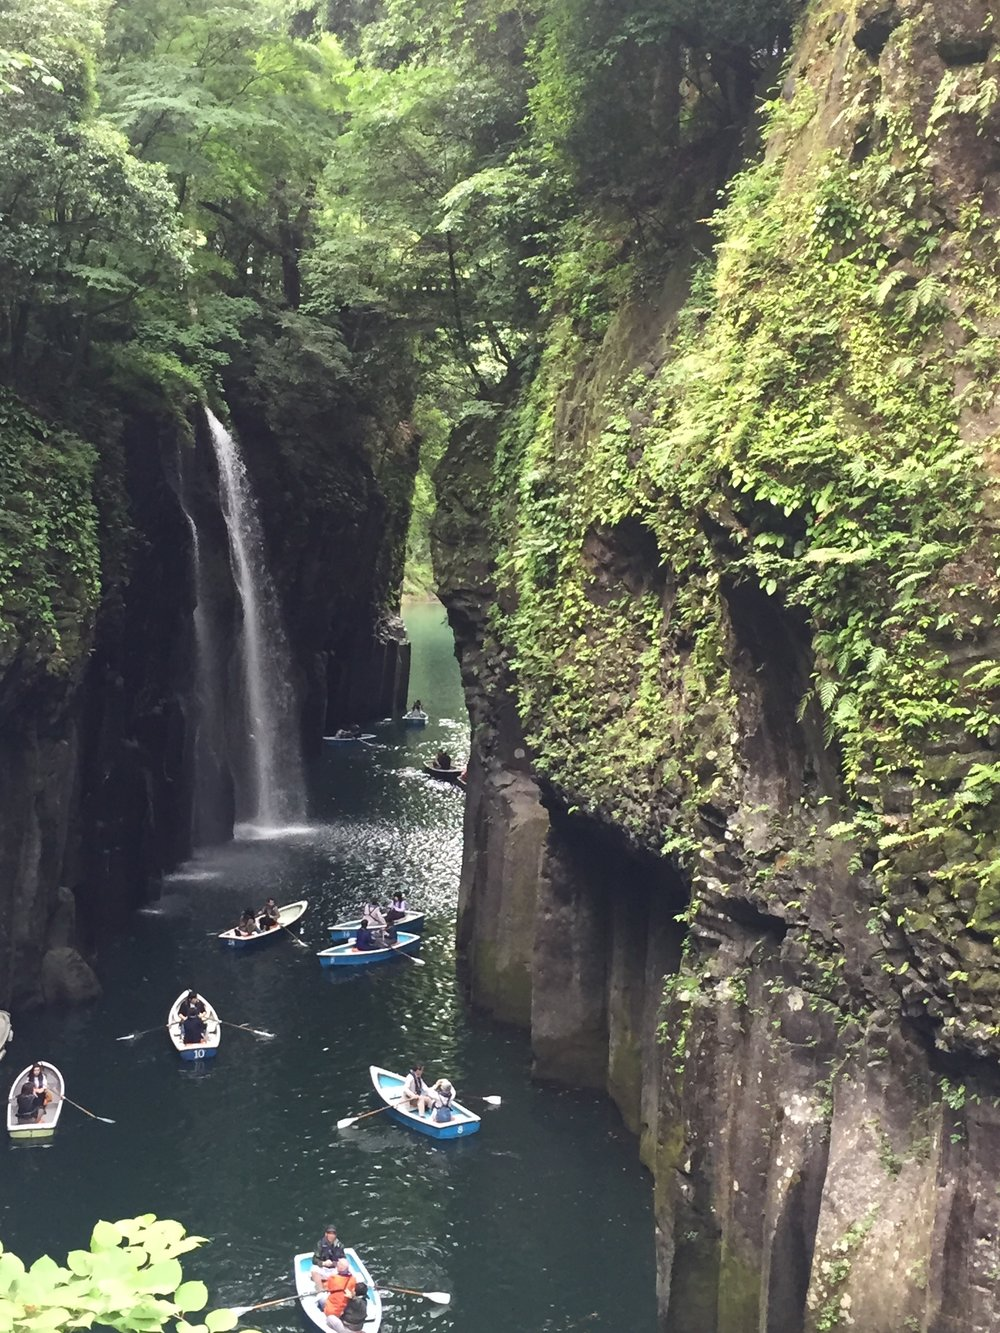 Boats trying to navigate Takachiho Gorge